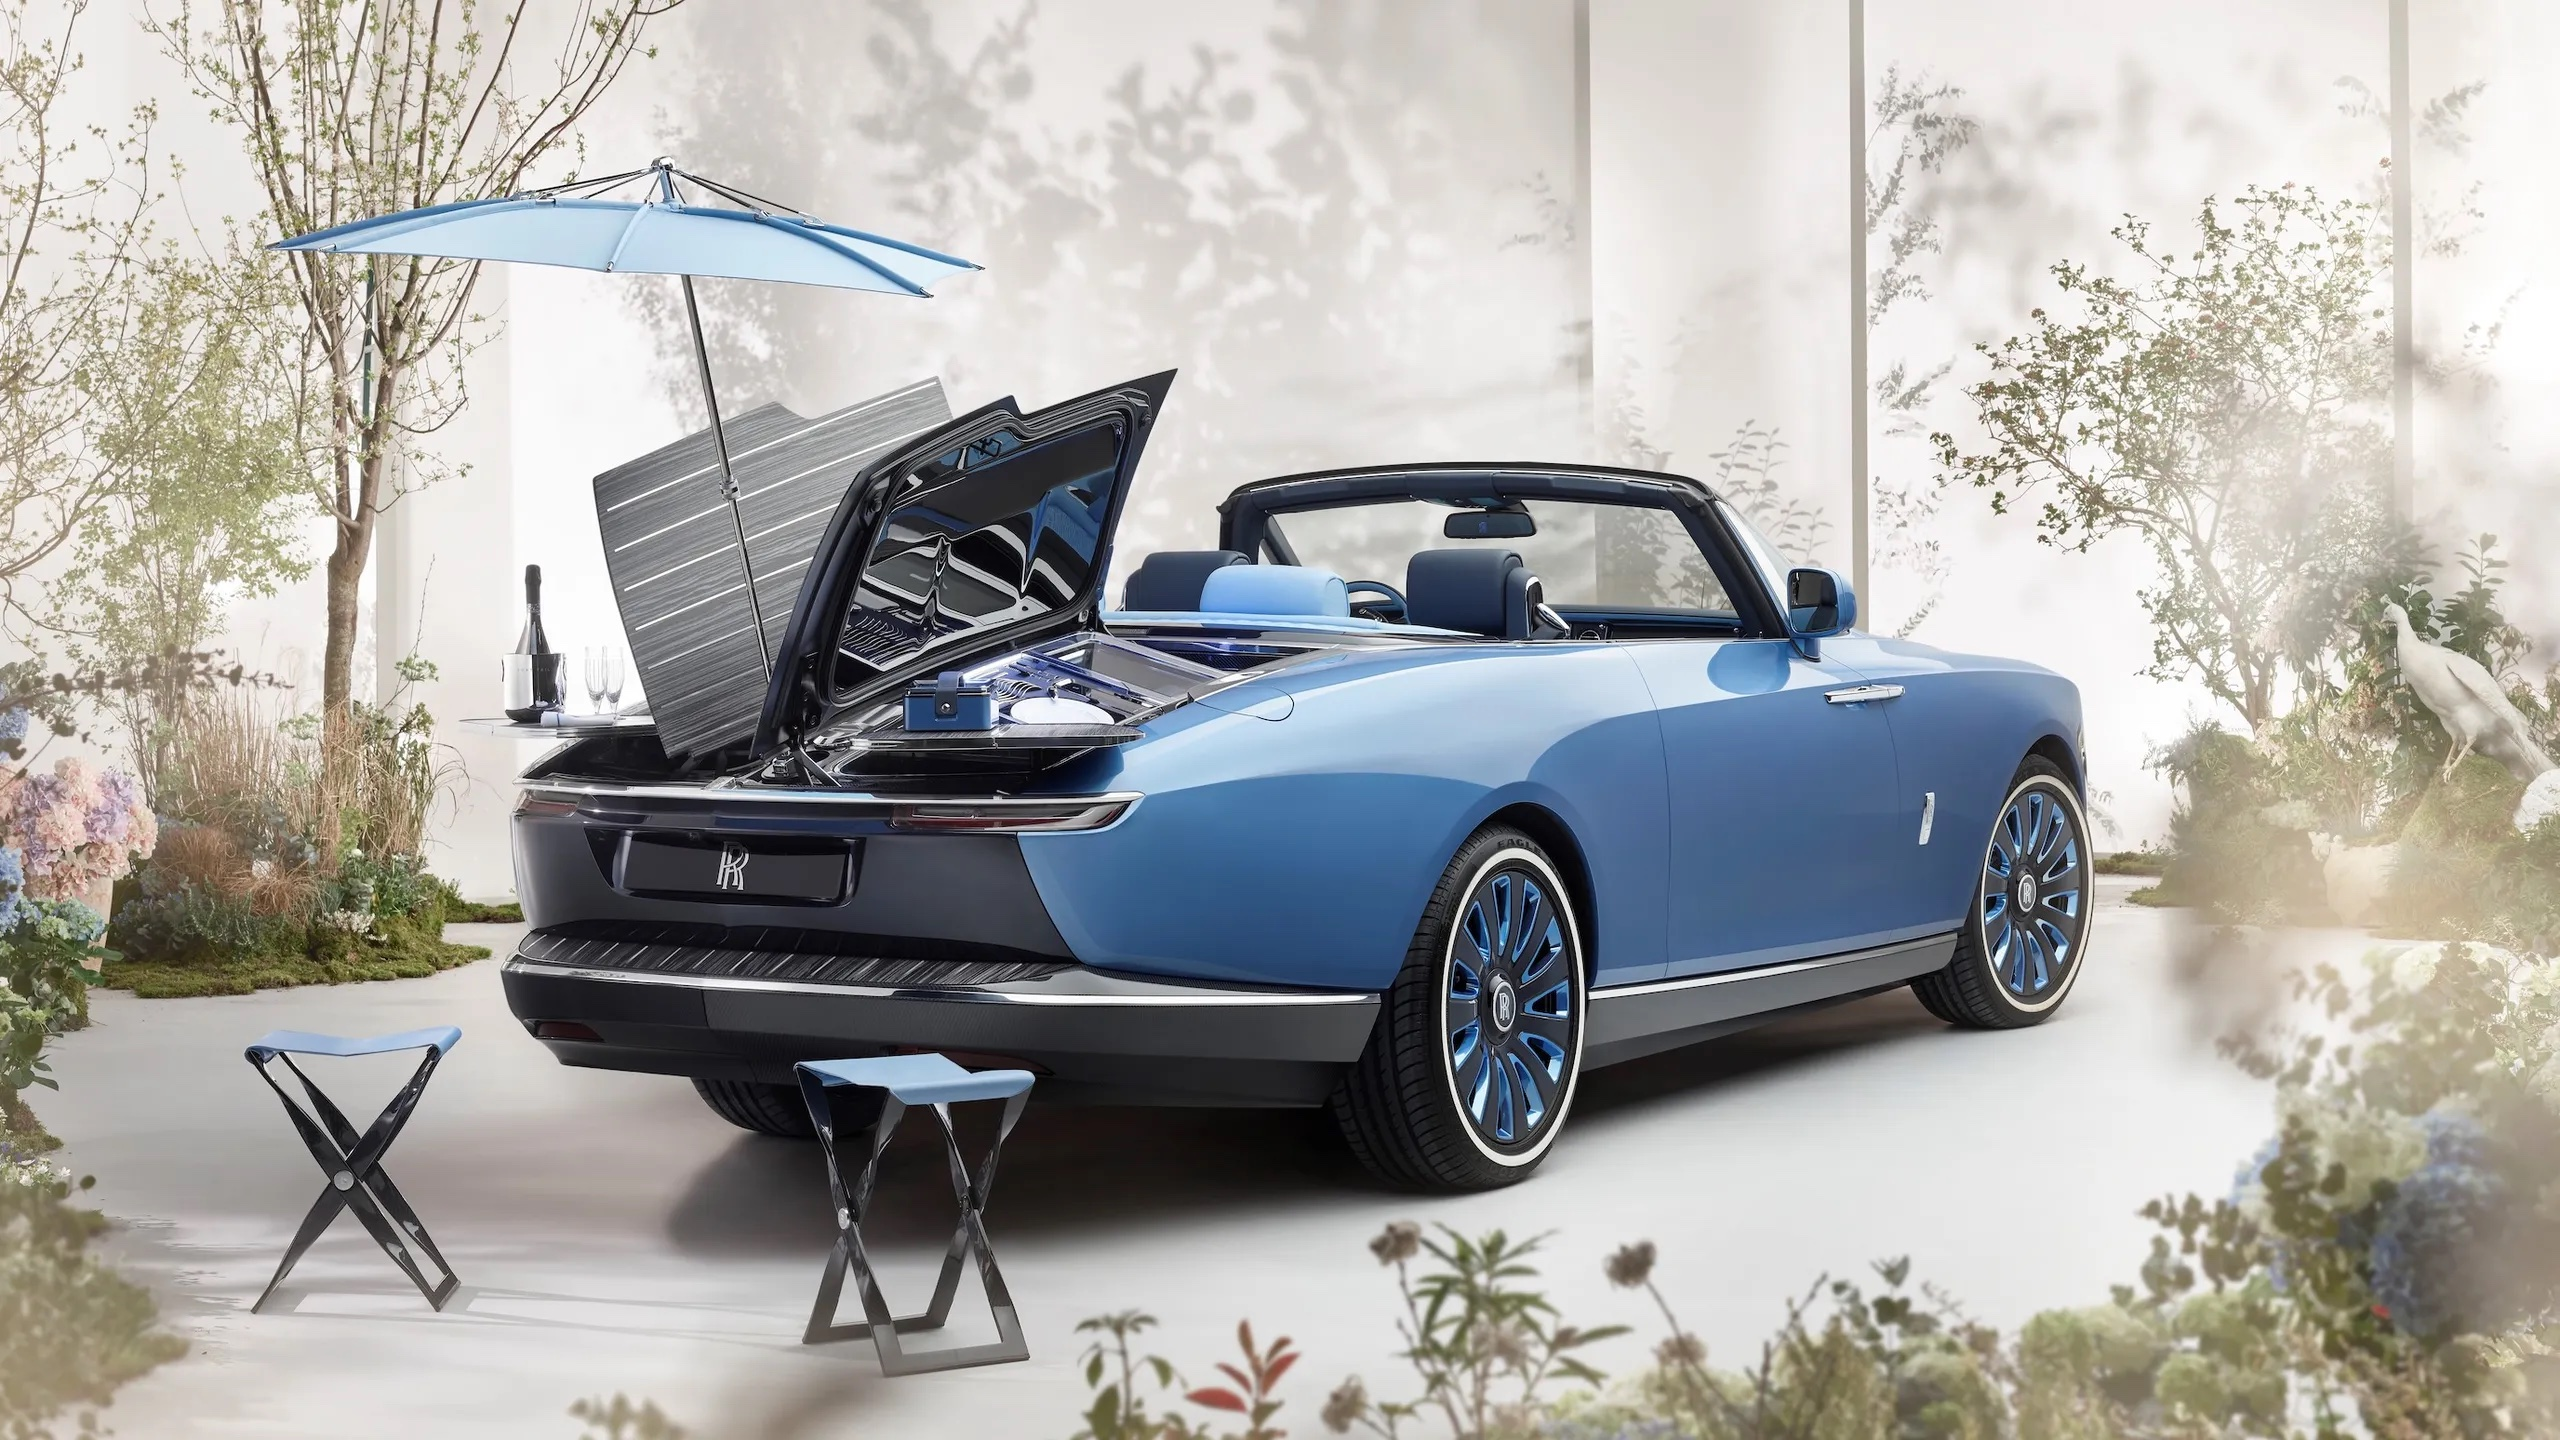 Rolls-Royce%2520Boat%2520Tail%2520Hosting%2520Suite%2520and%2520Parasol%2520Lifestyle.jpg copy.jpg